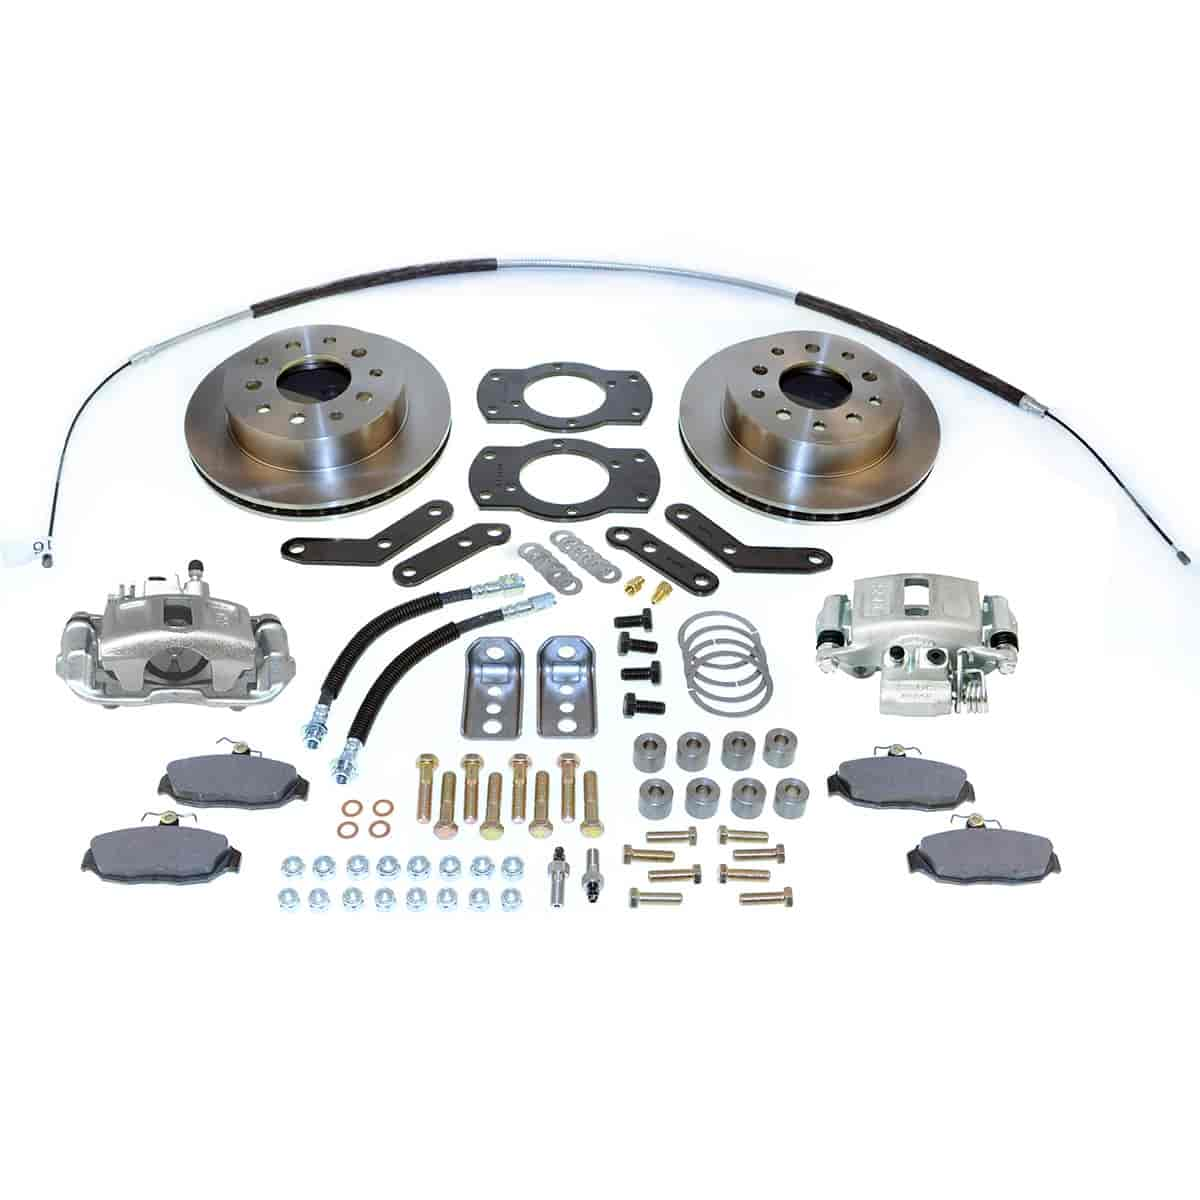 Stainless Steel Brakes A125-2 - Stainless Steel Brakes Single Piston Rear Disc Brake Conversion Kit